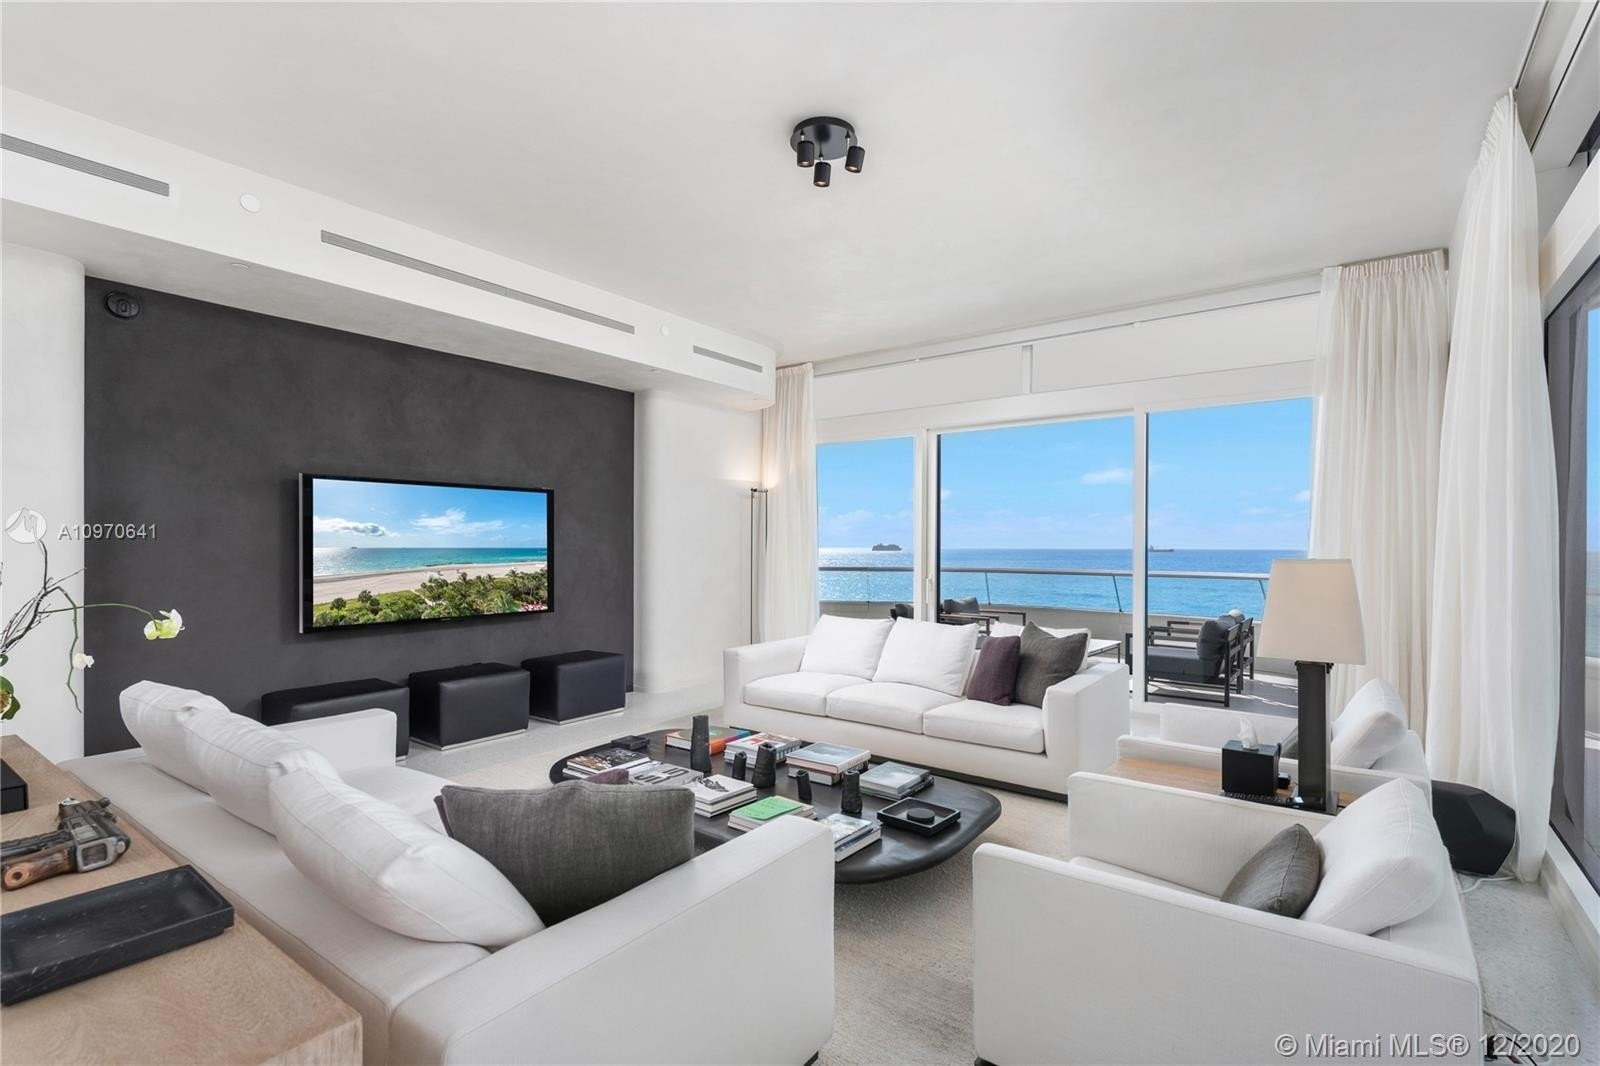 2. Condominiums for Sale at 3315 Collins Ave , 8B Ocean Front, Miami Beach, FL 33140